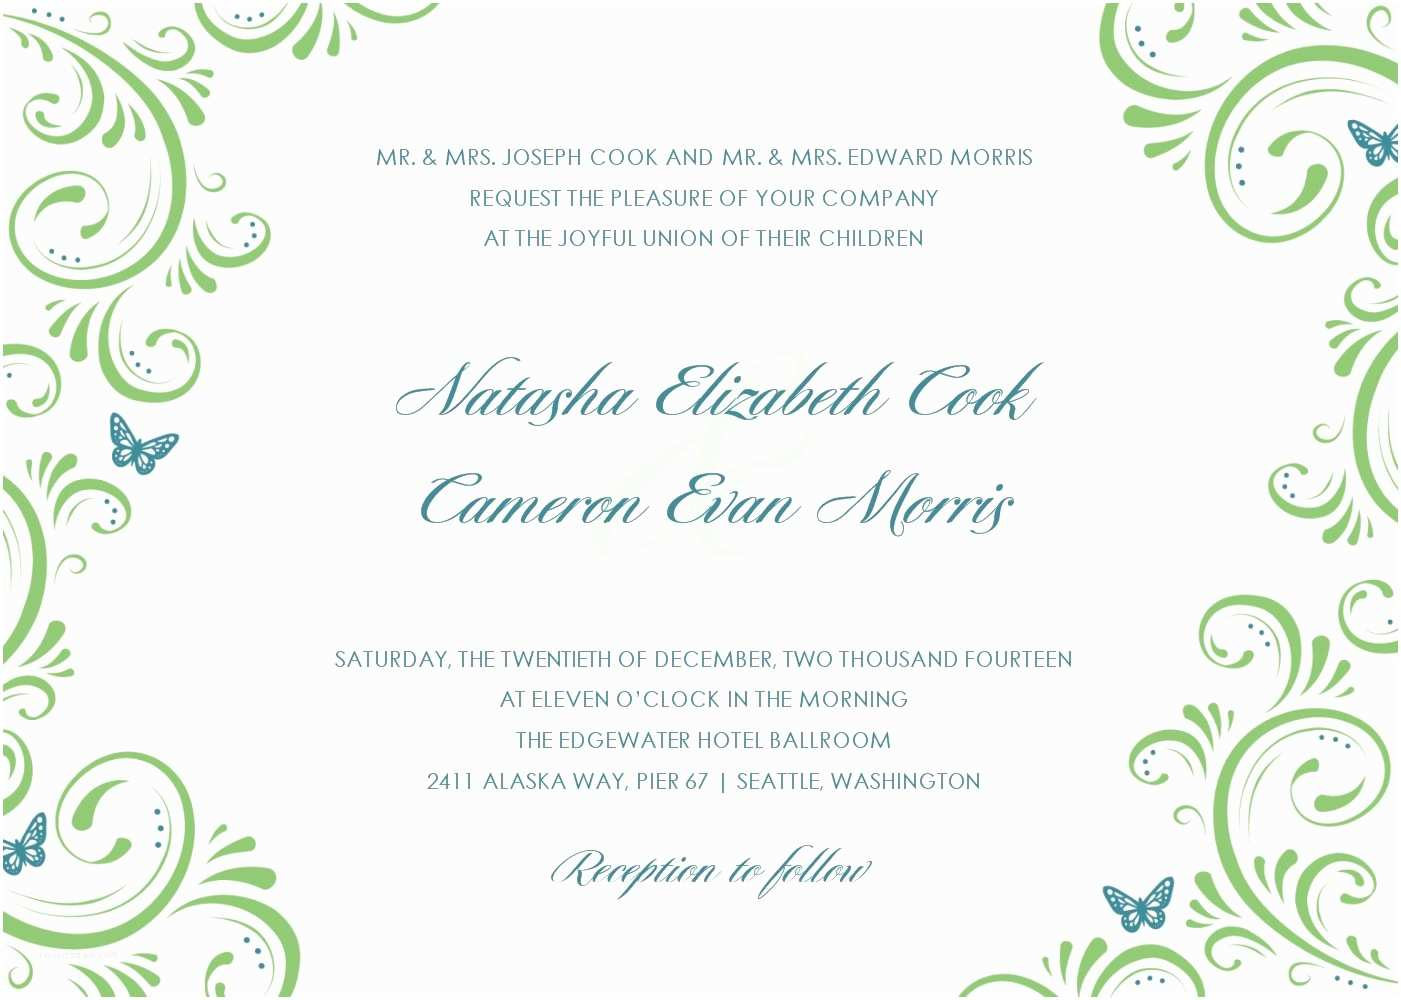 Wedding Invitation Design Templates Free Download Beautiful Wedding Invitation Templates